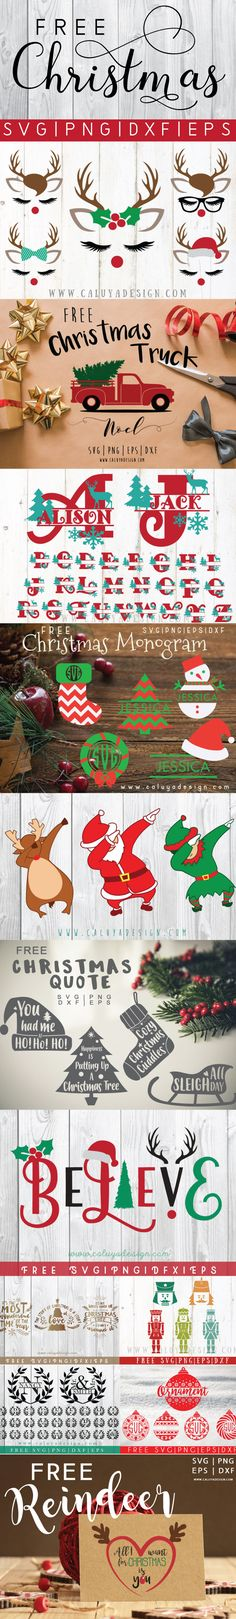 These cut files are FREE for PERSONAL use only. Please purchase extended license ($3) for commercial use.  #1: BELIEVE Christmas Cut File  #2: Christmas Dabbing Cut File  #3: Christmas Typography Cut File  #4: Reindeer Cut File  Sponsored Link   …